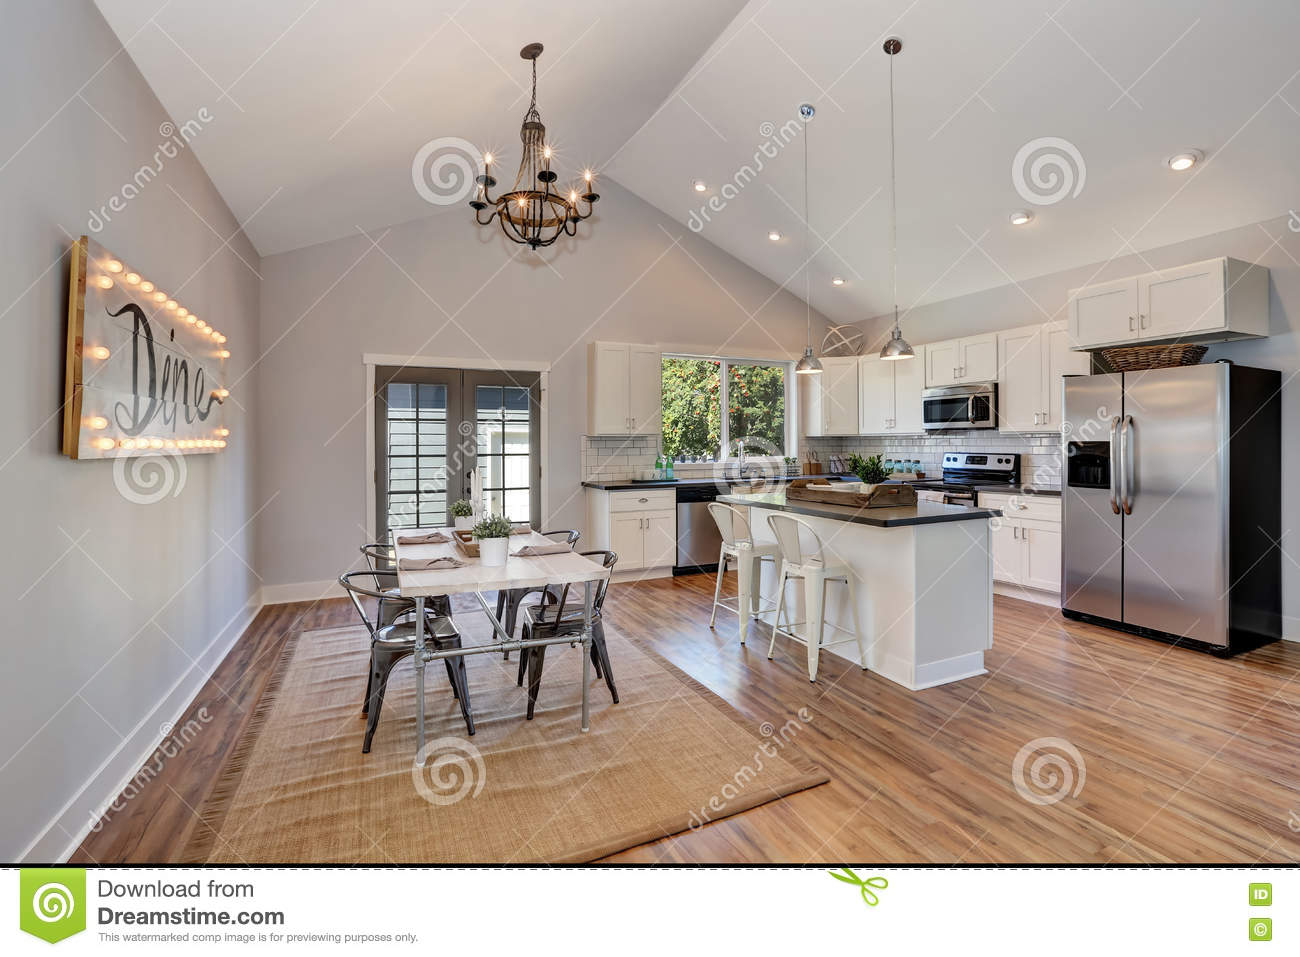 Interior Of Kitchen Room With High Vaulted Ceiling Stock Photo